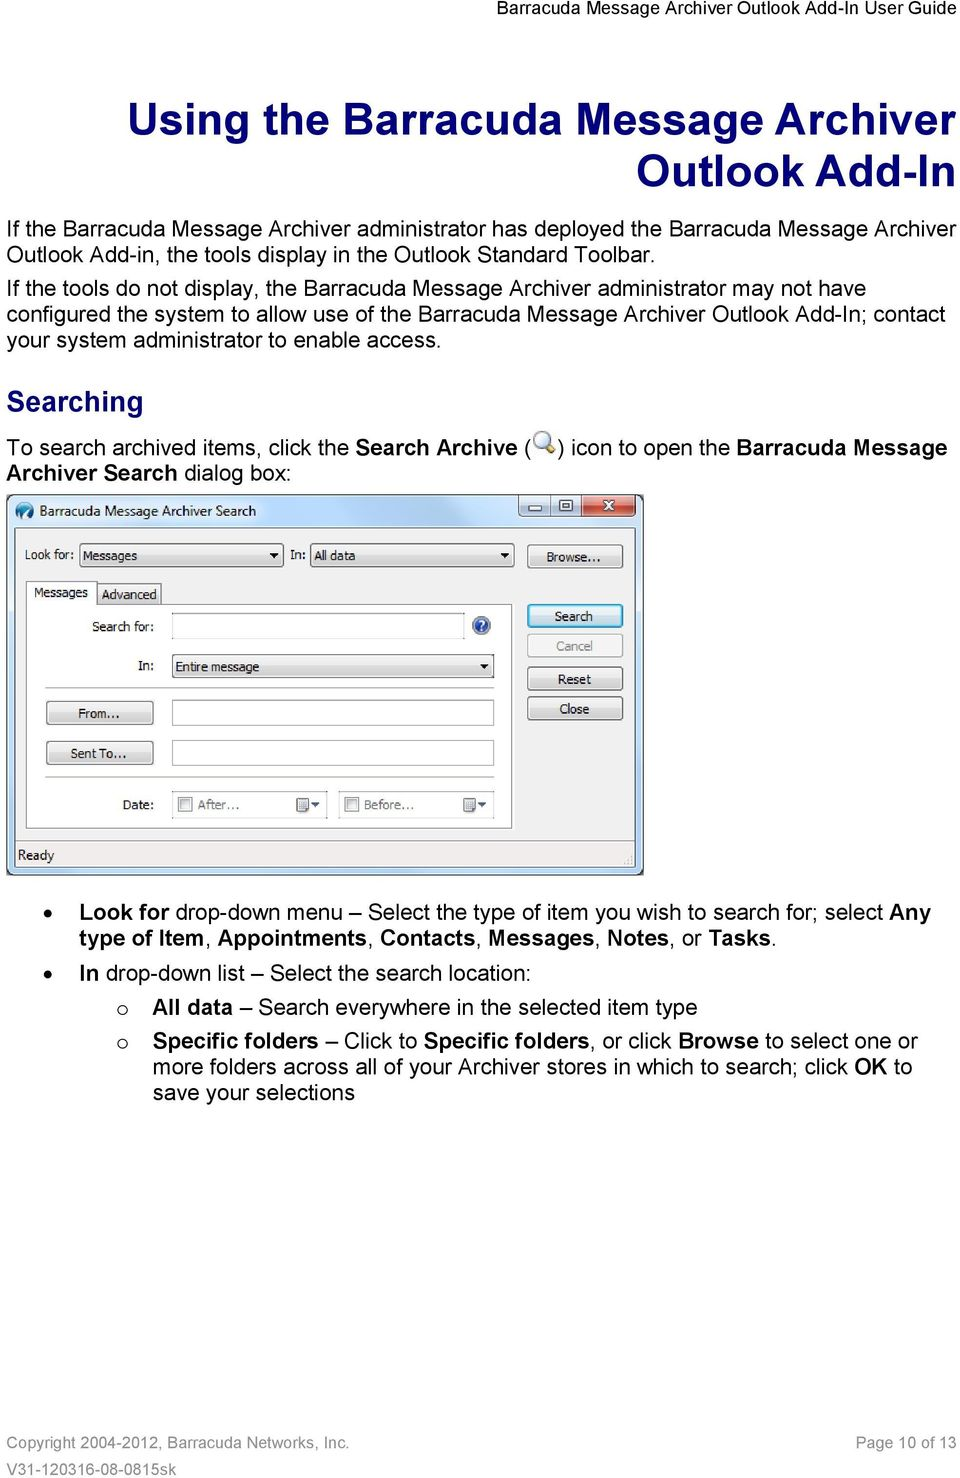 If the tools do not display, the Barracuda Message Archiver administrator may not have configured the system to allow use of the Barracuda Message Archiver Outlook Add-In; contact your system